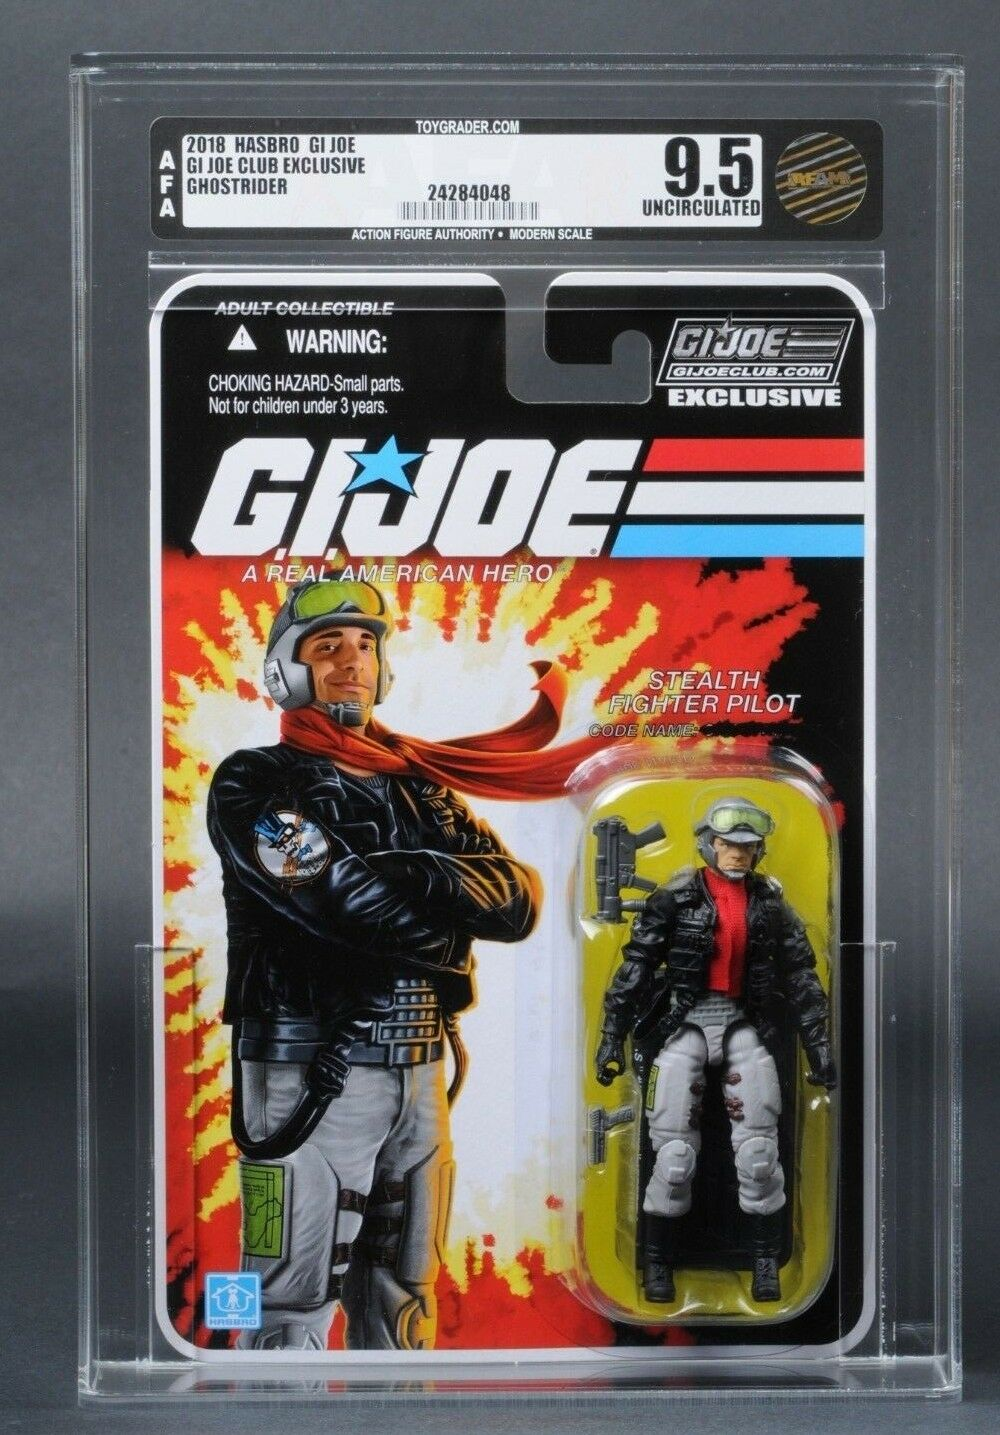 2018 GI Joe Stealth Fighter Pilot Ghostrider AFA U9.5 Club Exclusive FSS 6.0 MOC